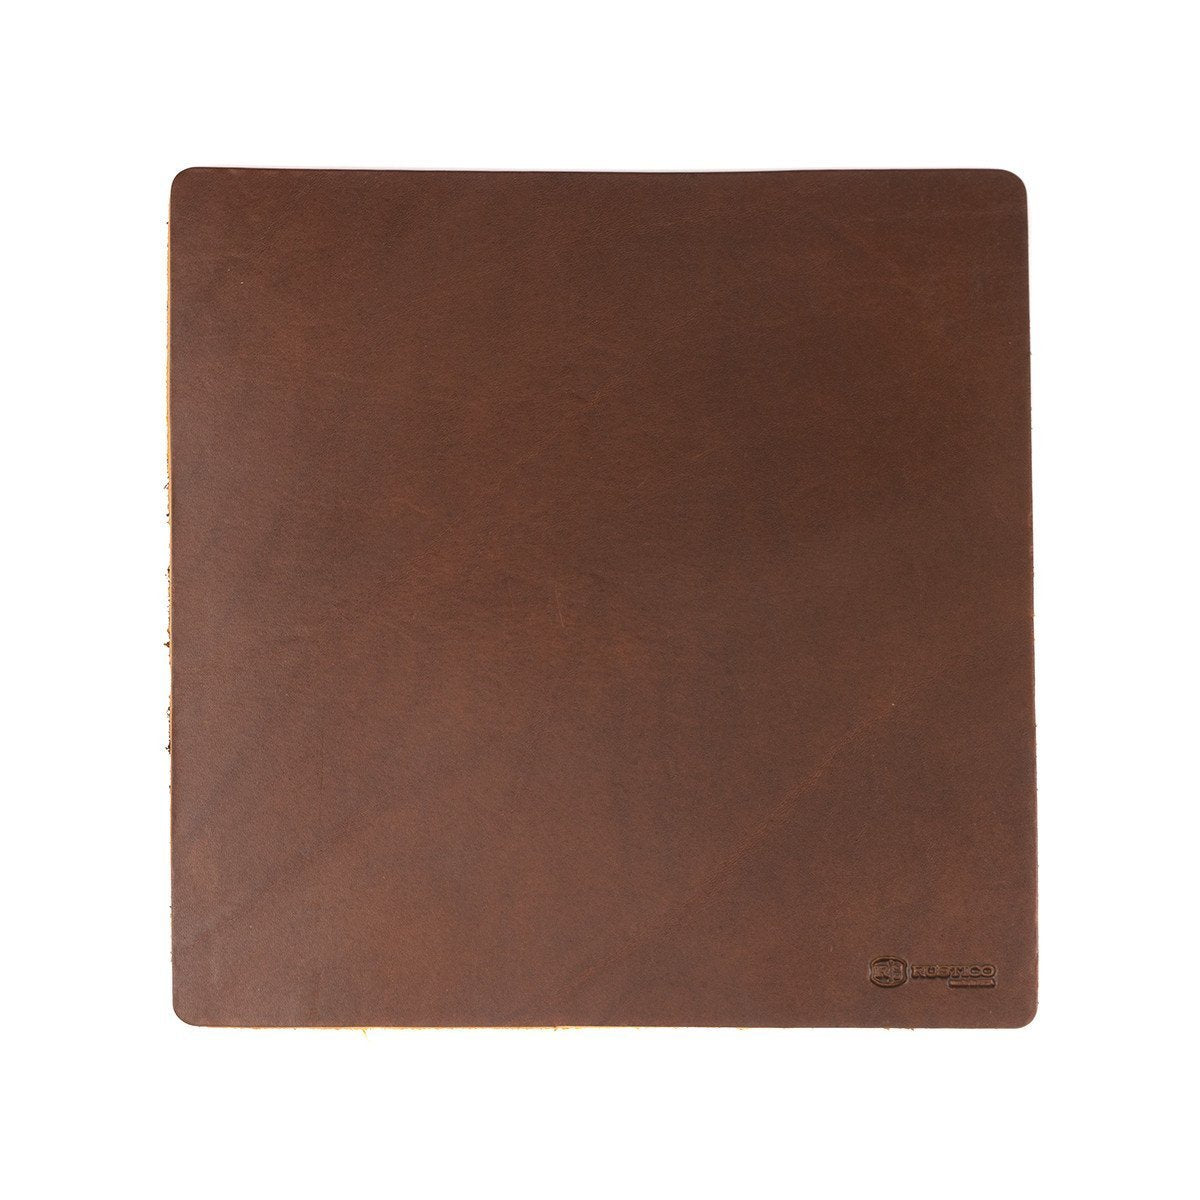 Ultra Leather Mouse Pad